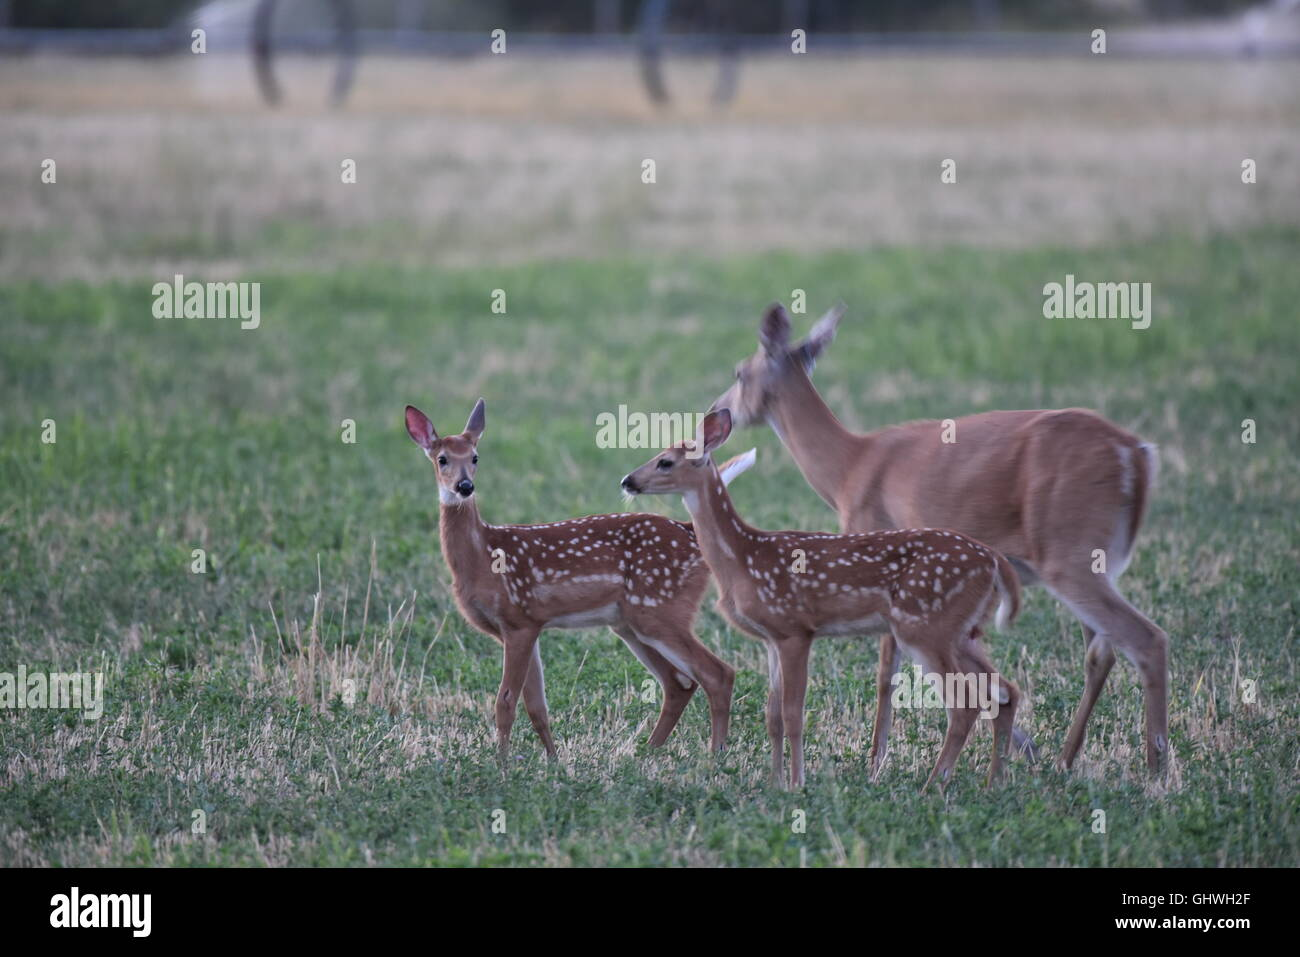 Doe With Twins near the Little Pend Oreille nature preserve north of Spokane, WA - Stock Image